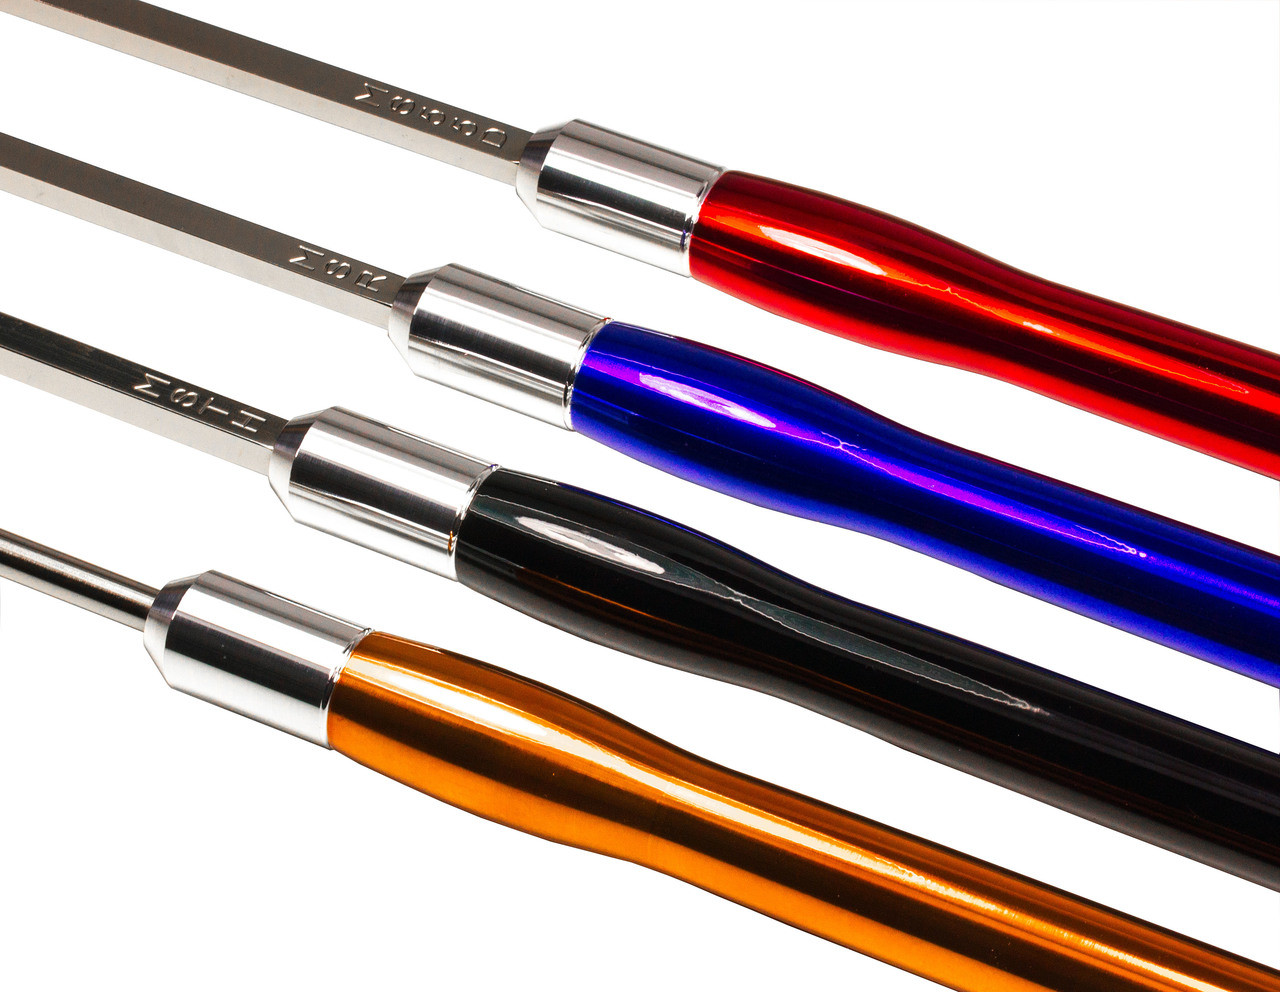 Carbide Turning Tools Set of 4 Mid Size Tools with Color Coded Handles